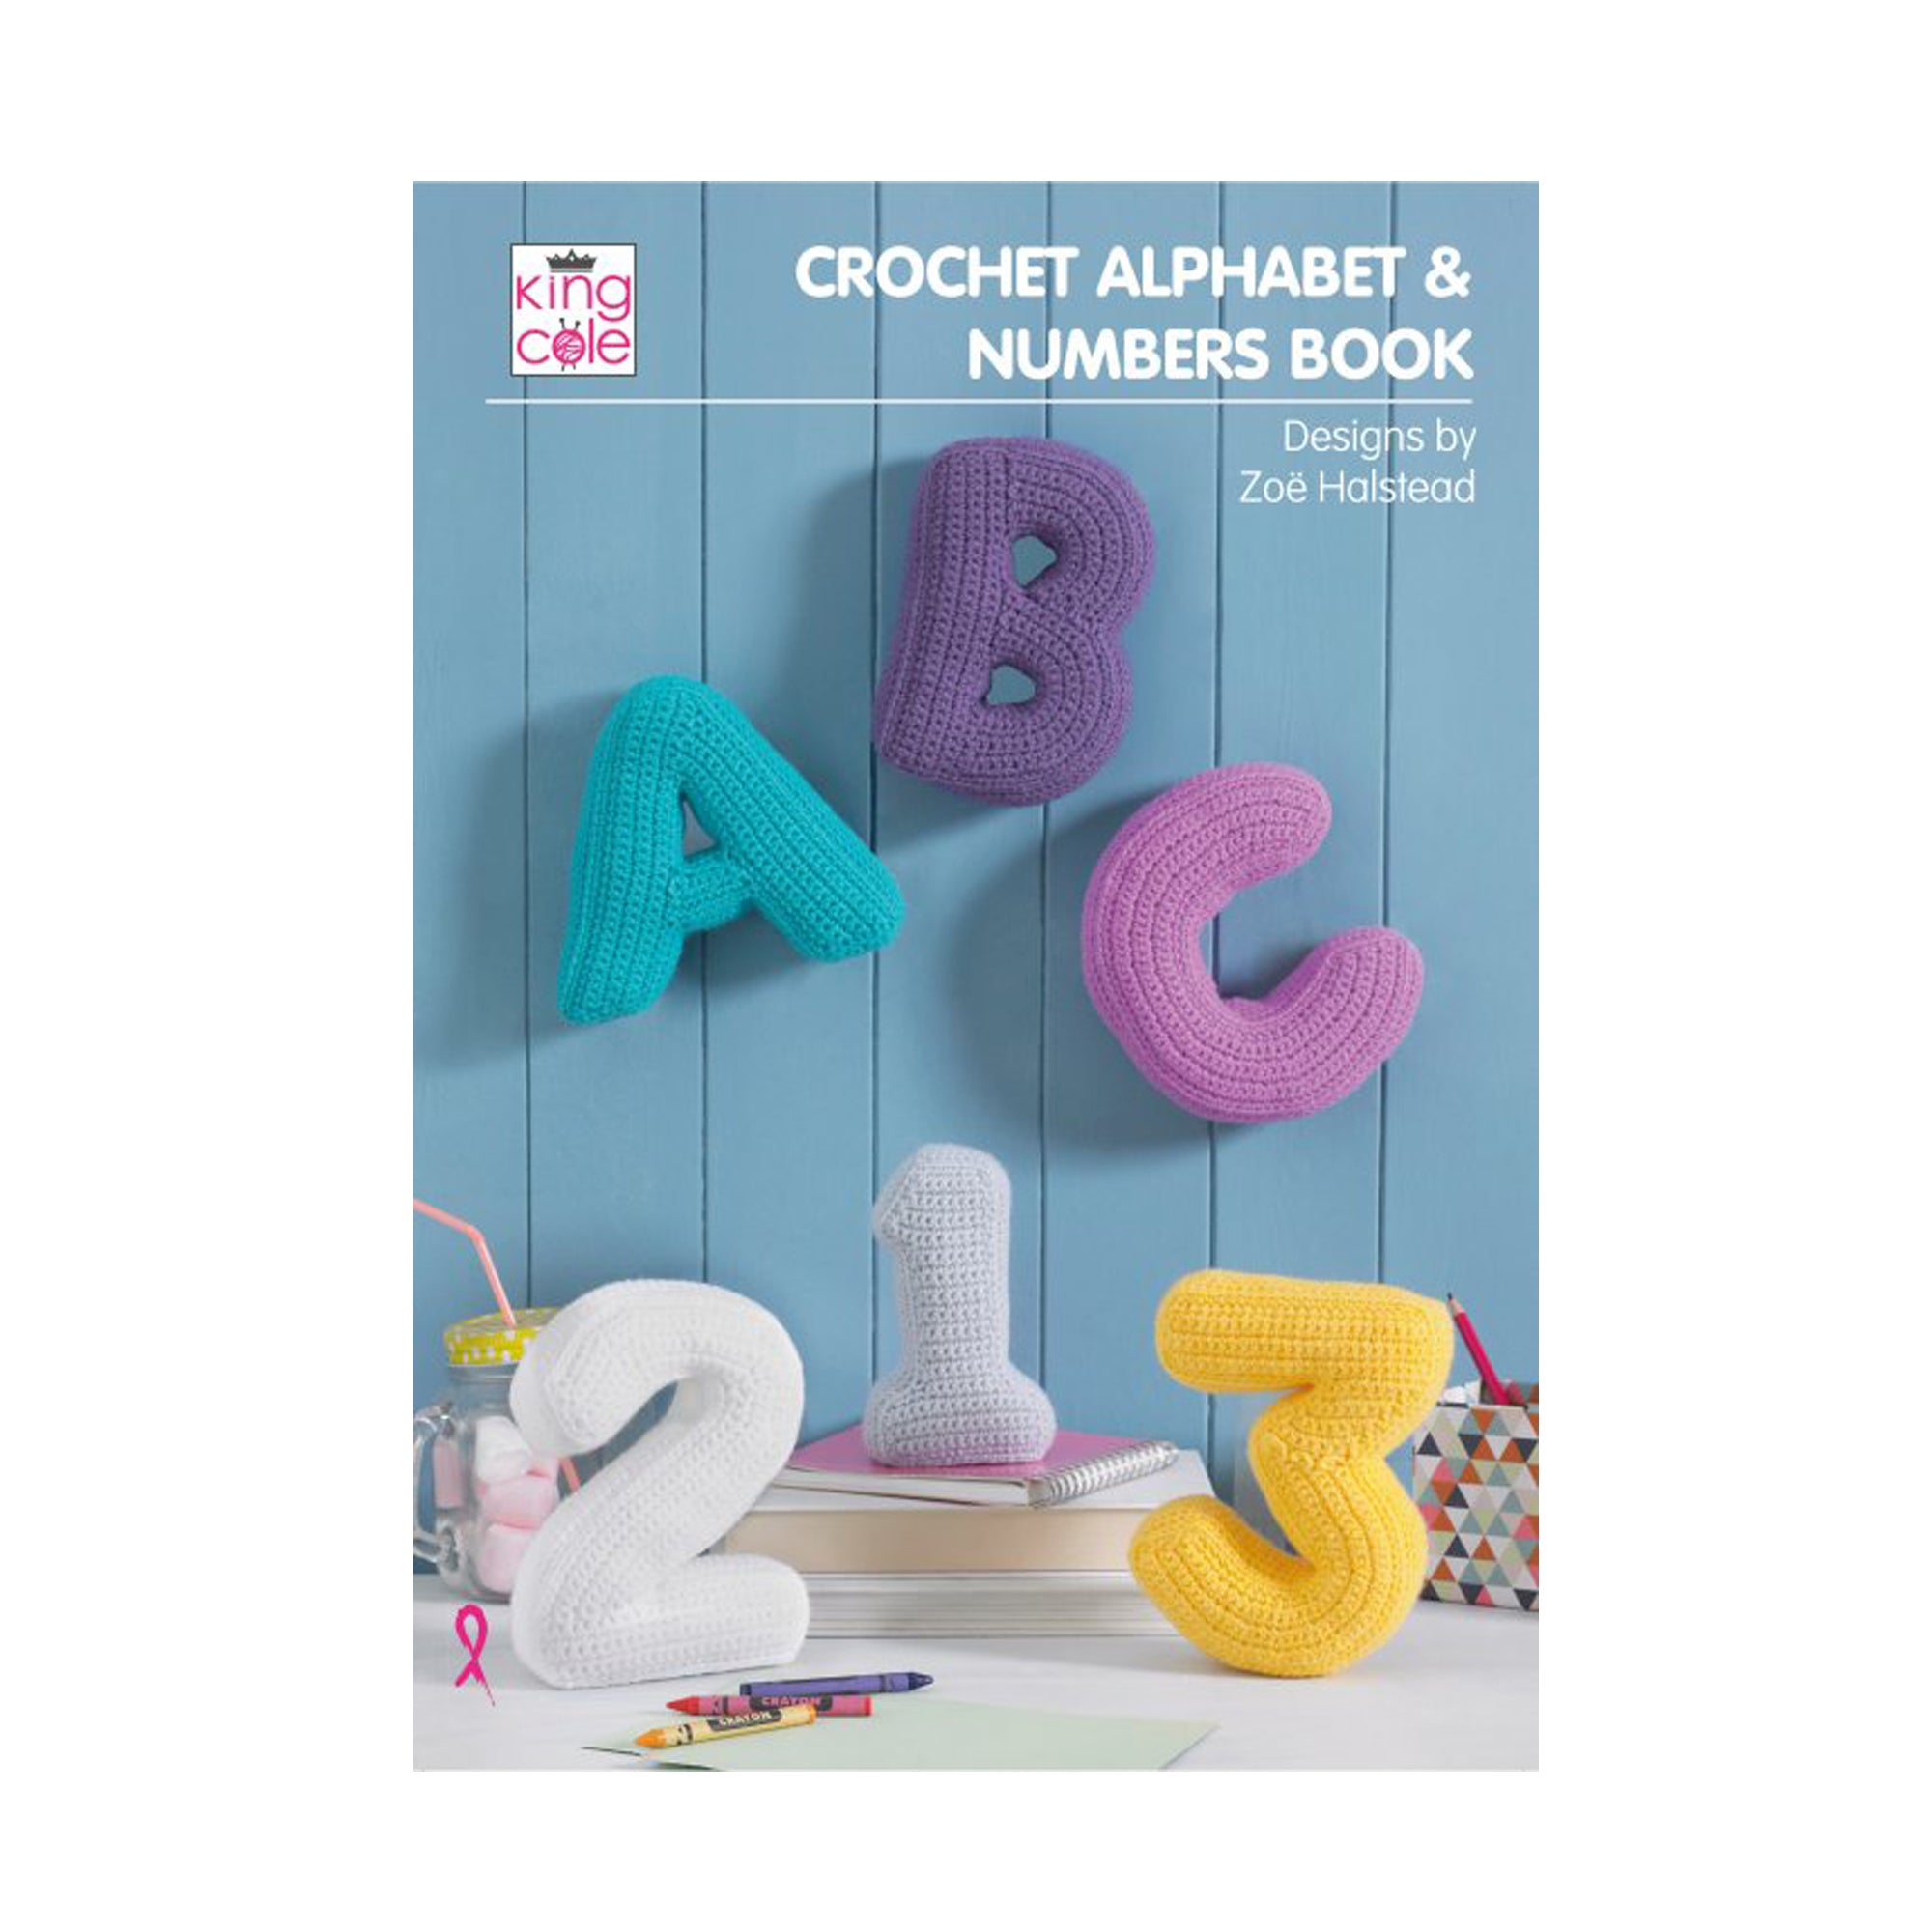 Crochet Pattern: Crochet Alphabet and Numbers Book